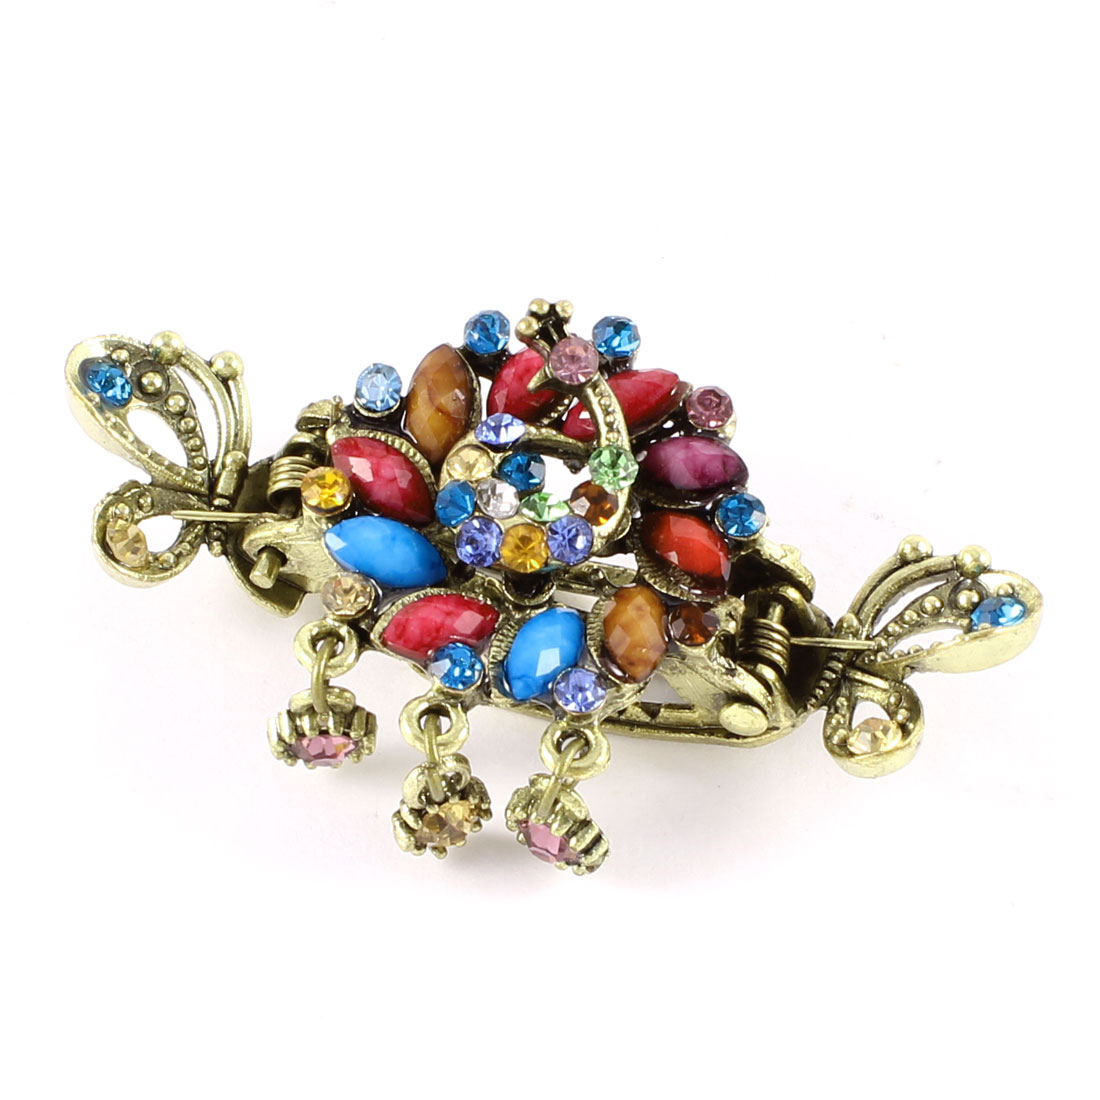 Bronze Tone Colorful Shiny Rhinestones Dangling Mini Hair Claw Teeth Clamp